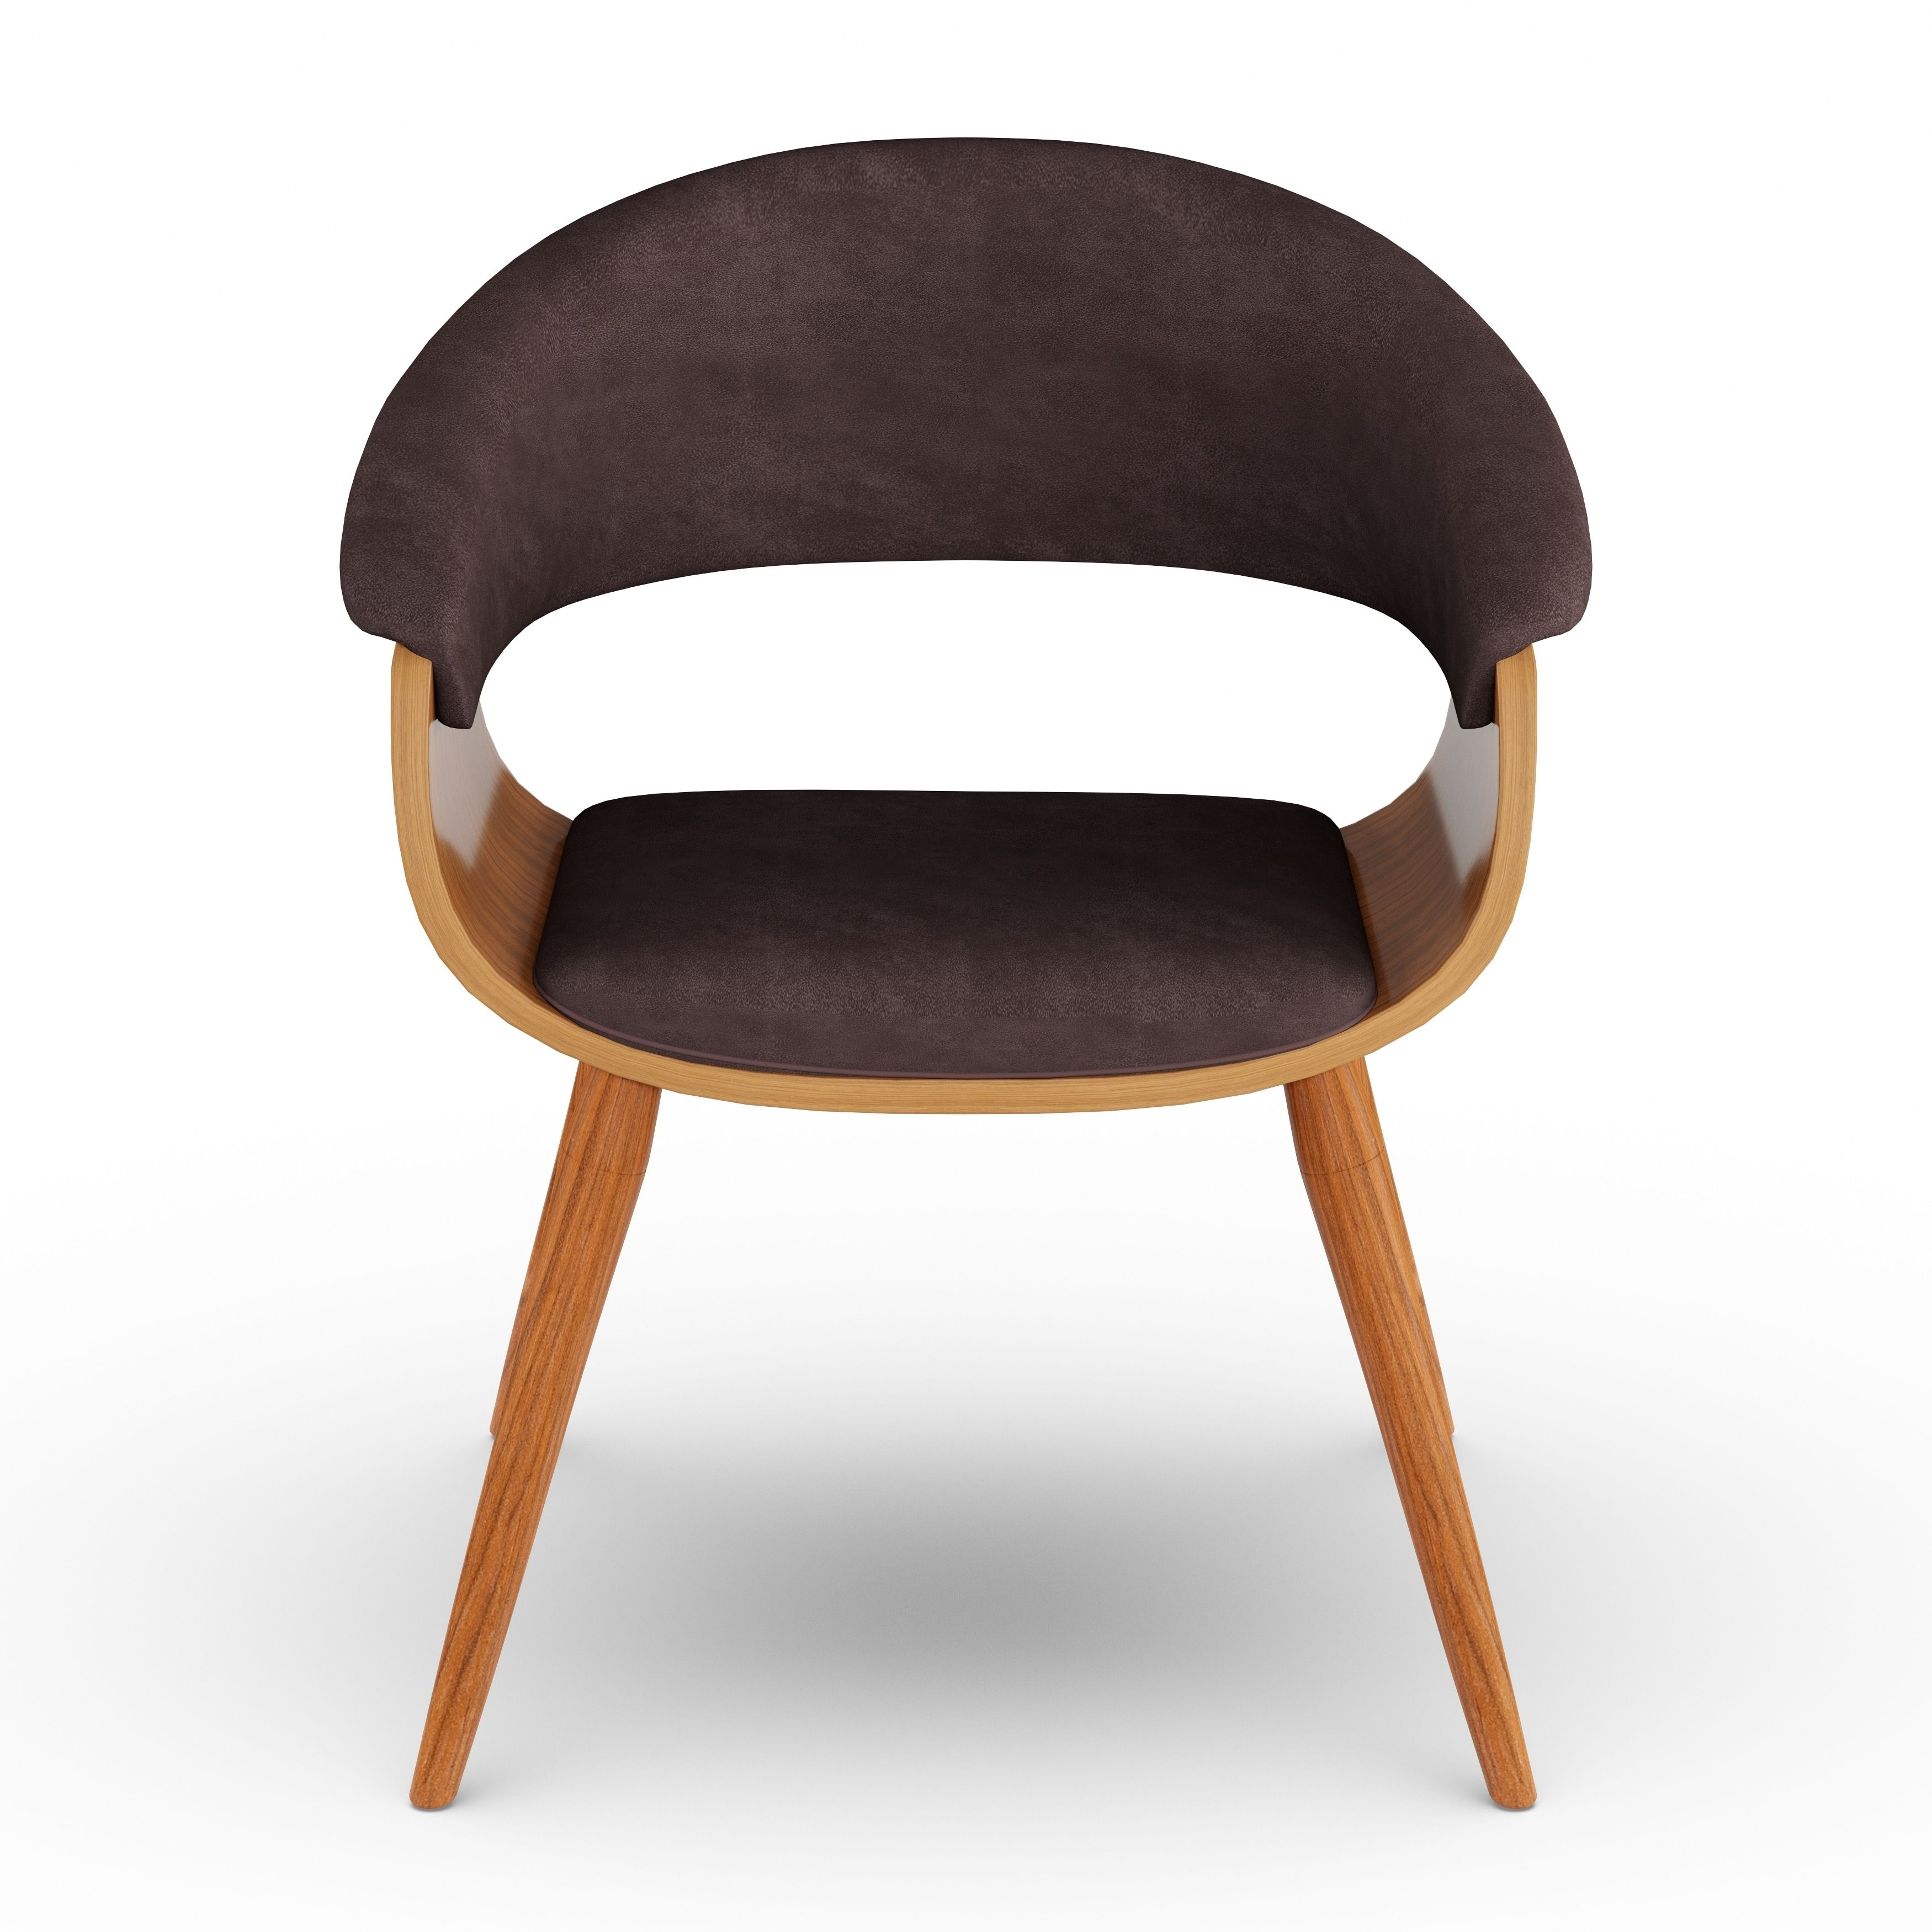 Palm Canyon Vintage Mod Mid Century Modern Accent Dining Chair